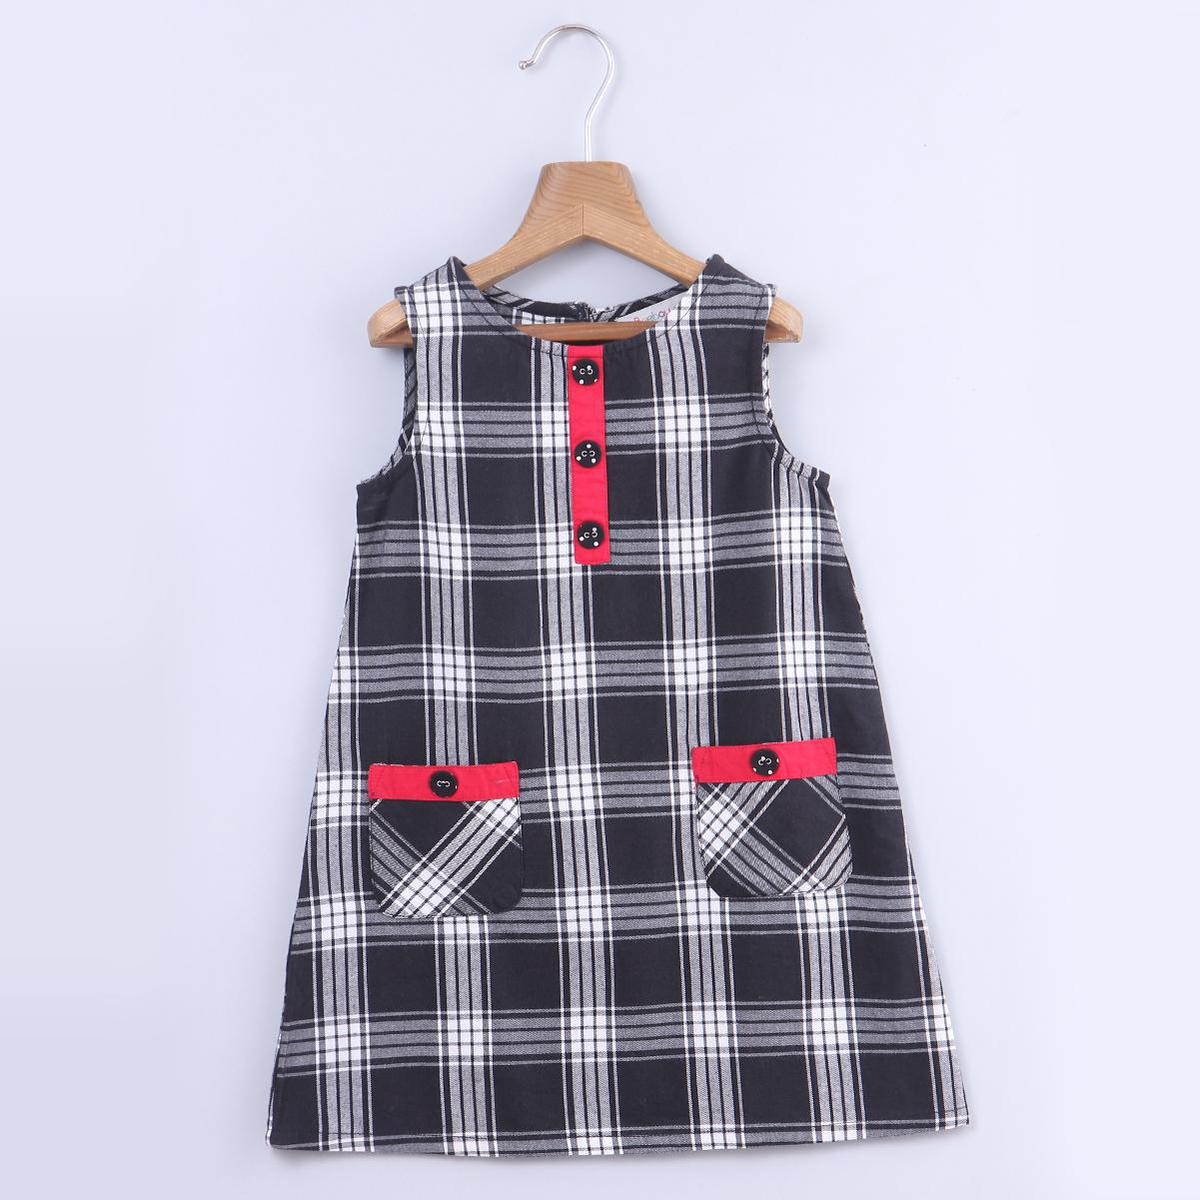 Beebay - Black Colored Y/D Check Pinafore Cotton Dress For Infants Girls